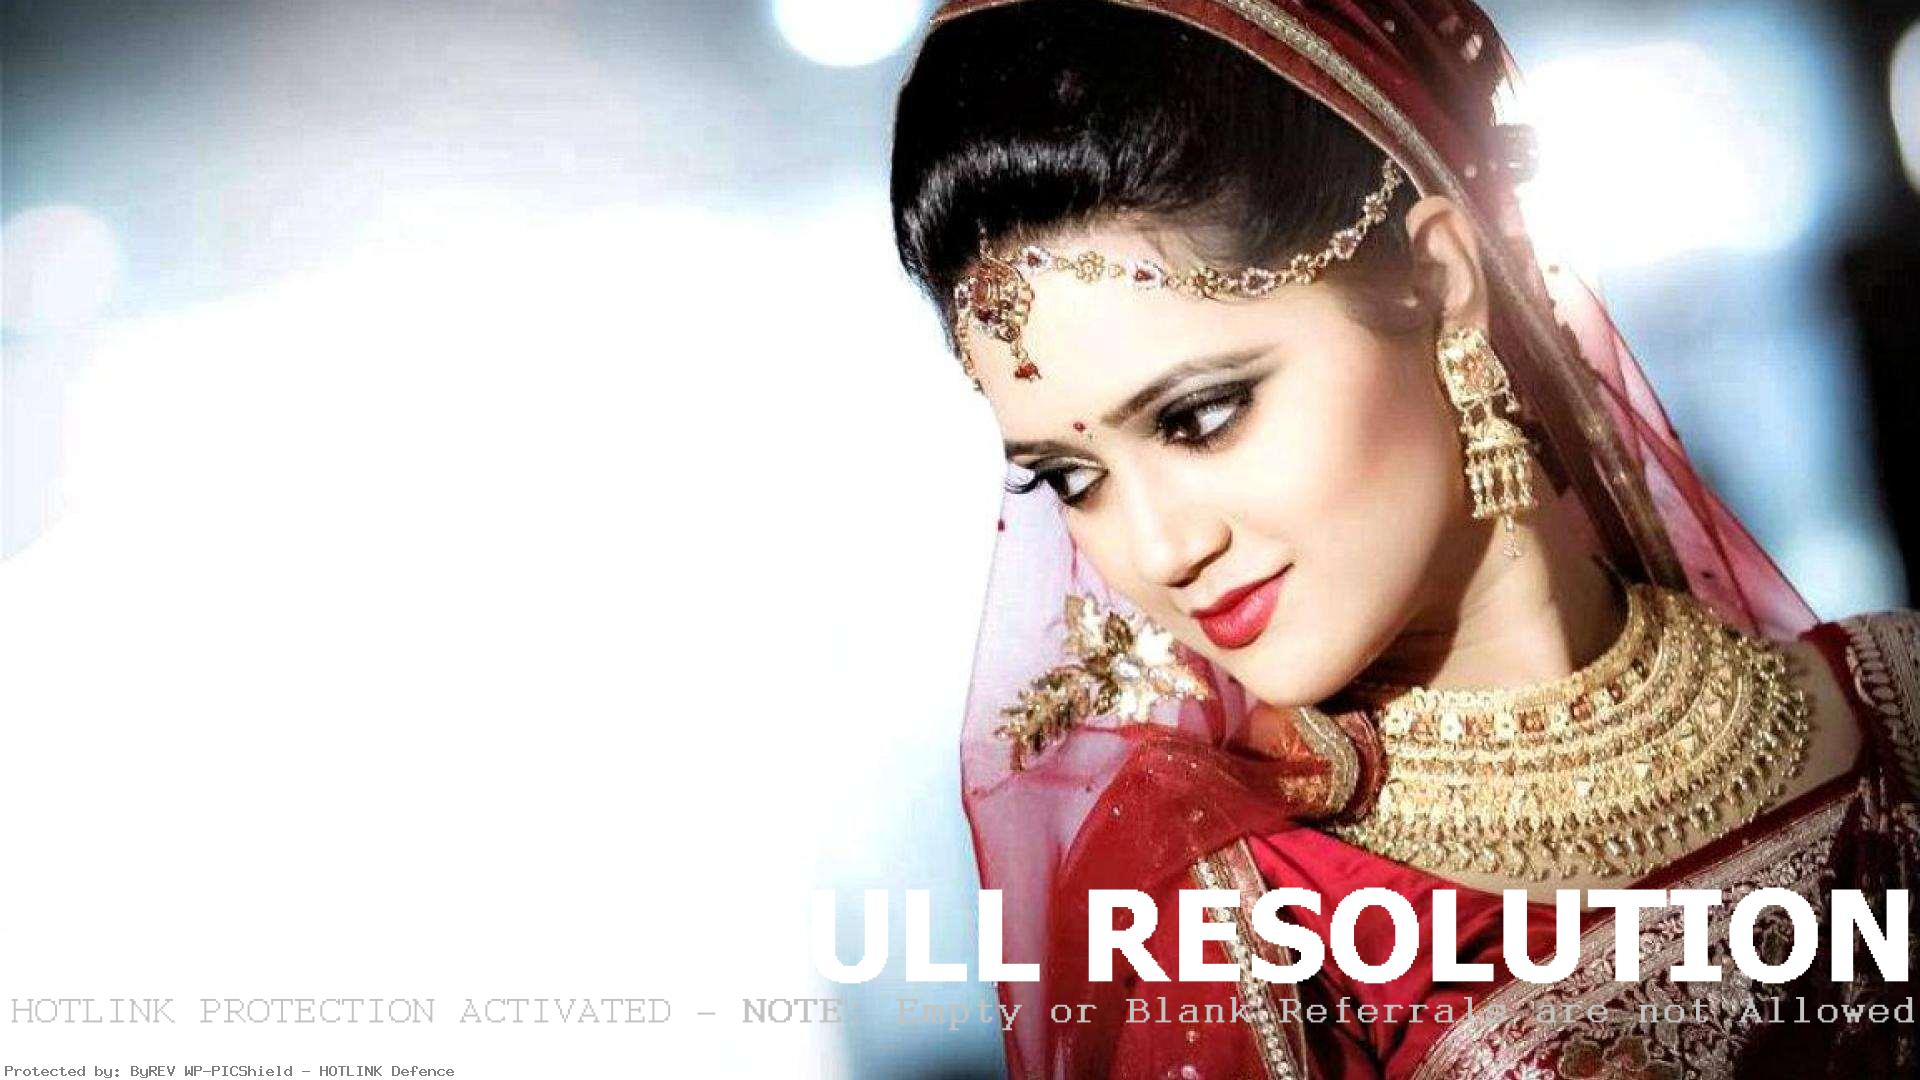 Download wallpapers of indian brides gallery - Indian beautiful models hd wallpapers ...